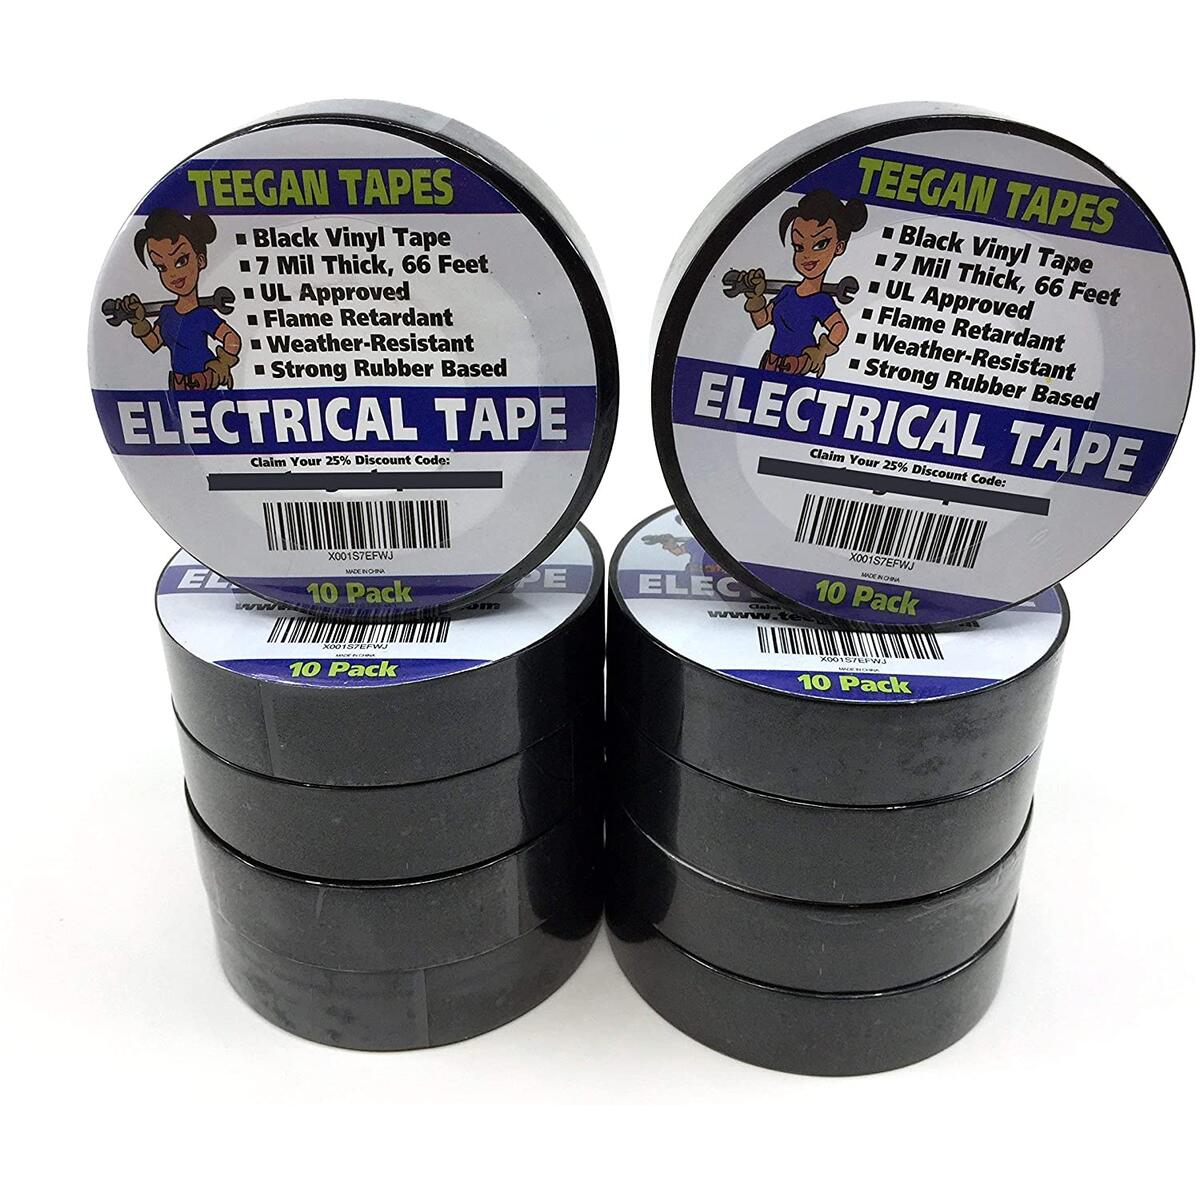 Black Electrical Tape - Black Vinyl Electric Tape (10 Pack) | 7 mil Thick Vinyl Tape 3/4 Inch Wide 66 Foot Long Roll | Strong Rubber Base | Flame Retardant, Temperature & Weather Resistant (Black)